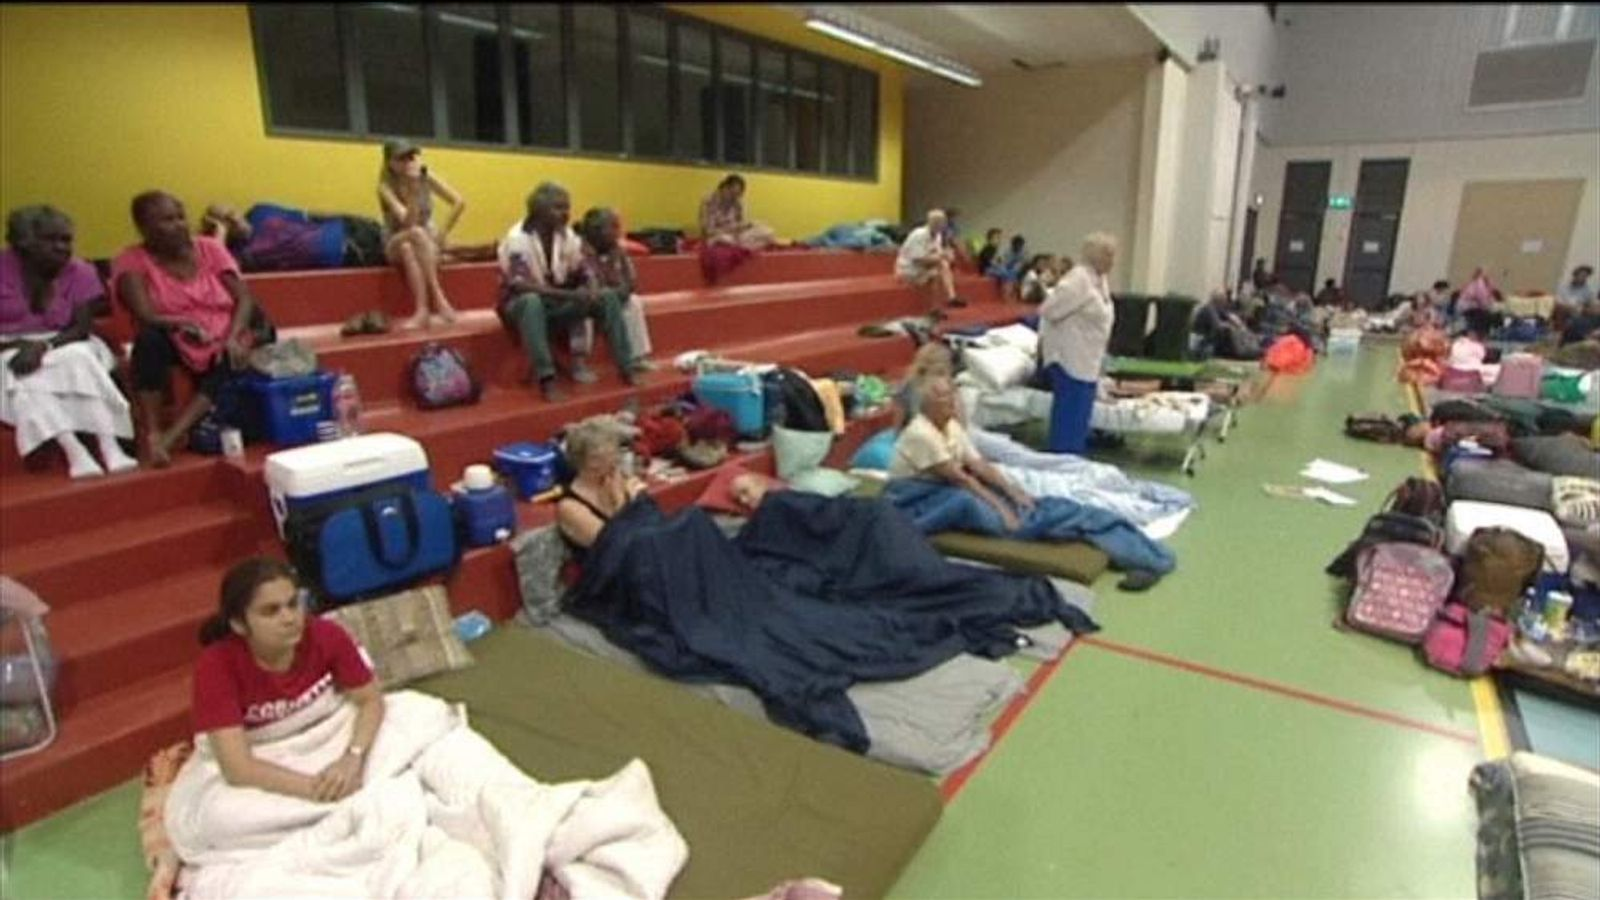 People in emergency shelter in northern Queensland, Australia